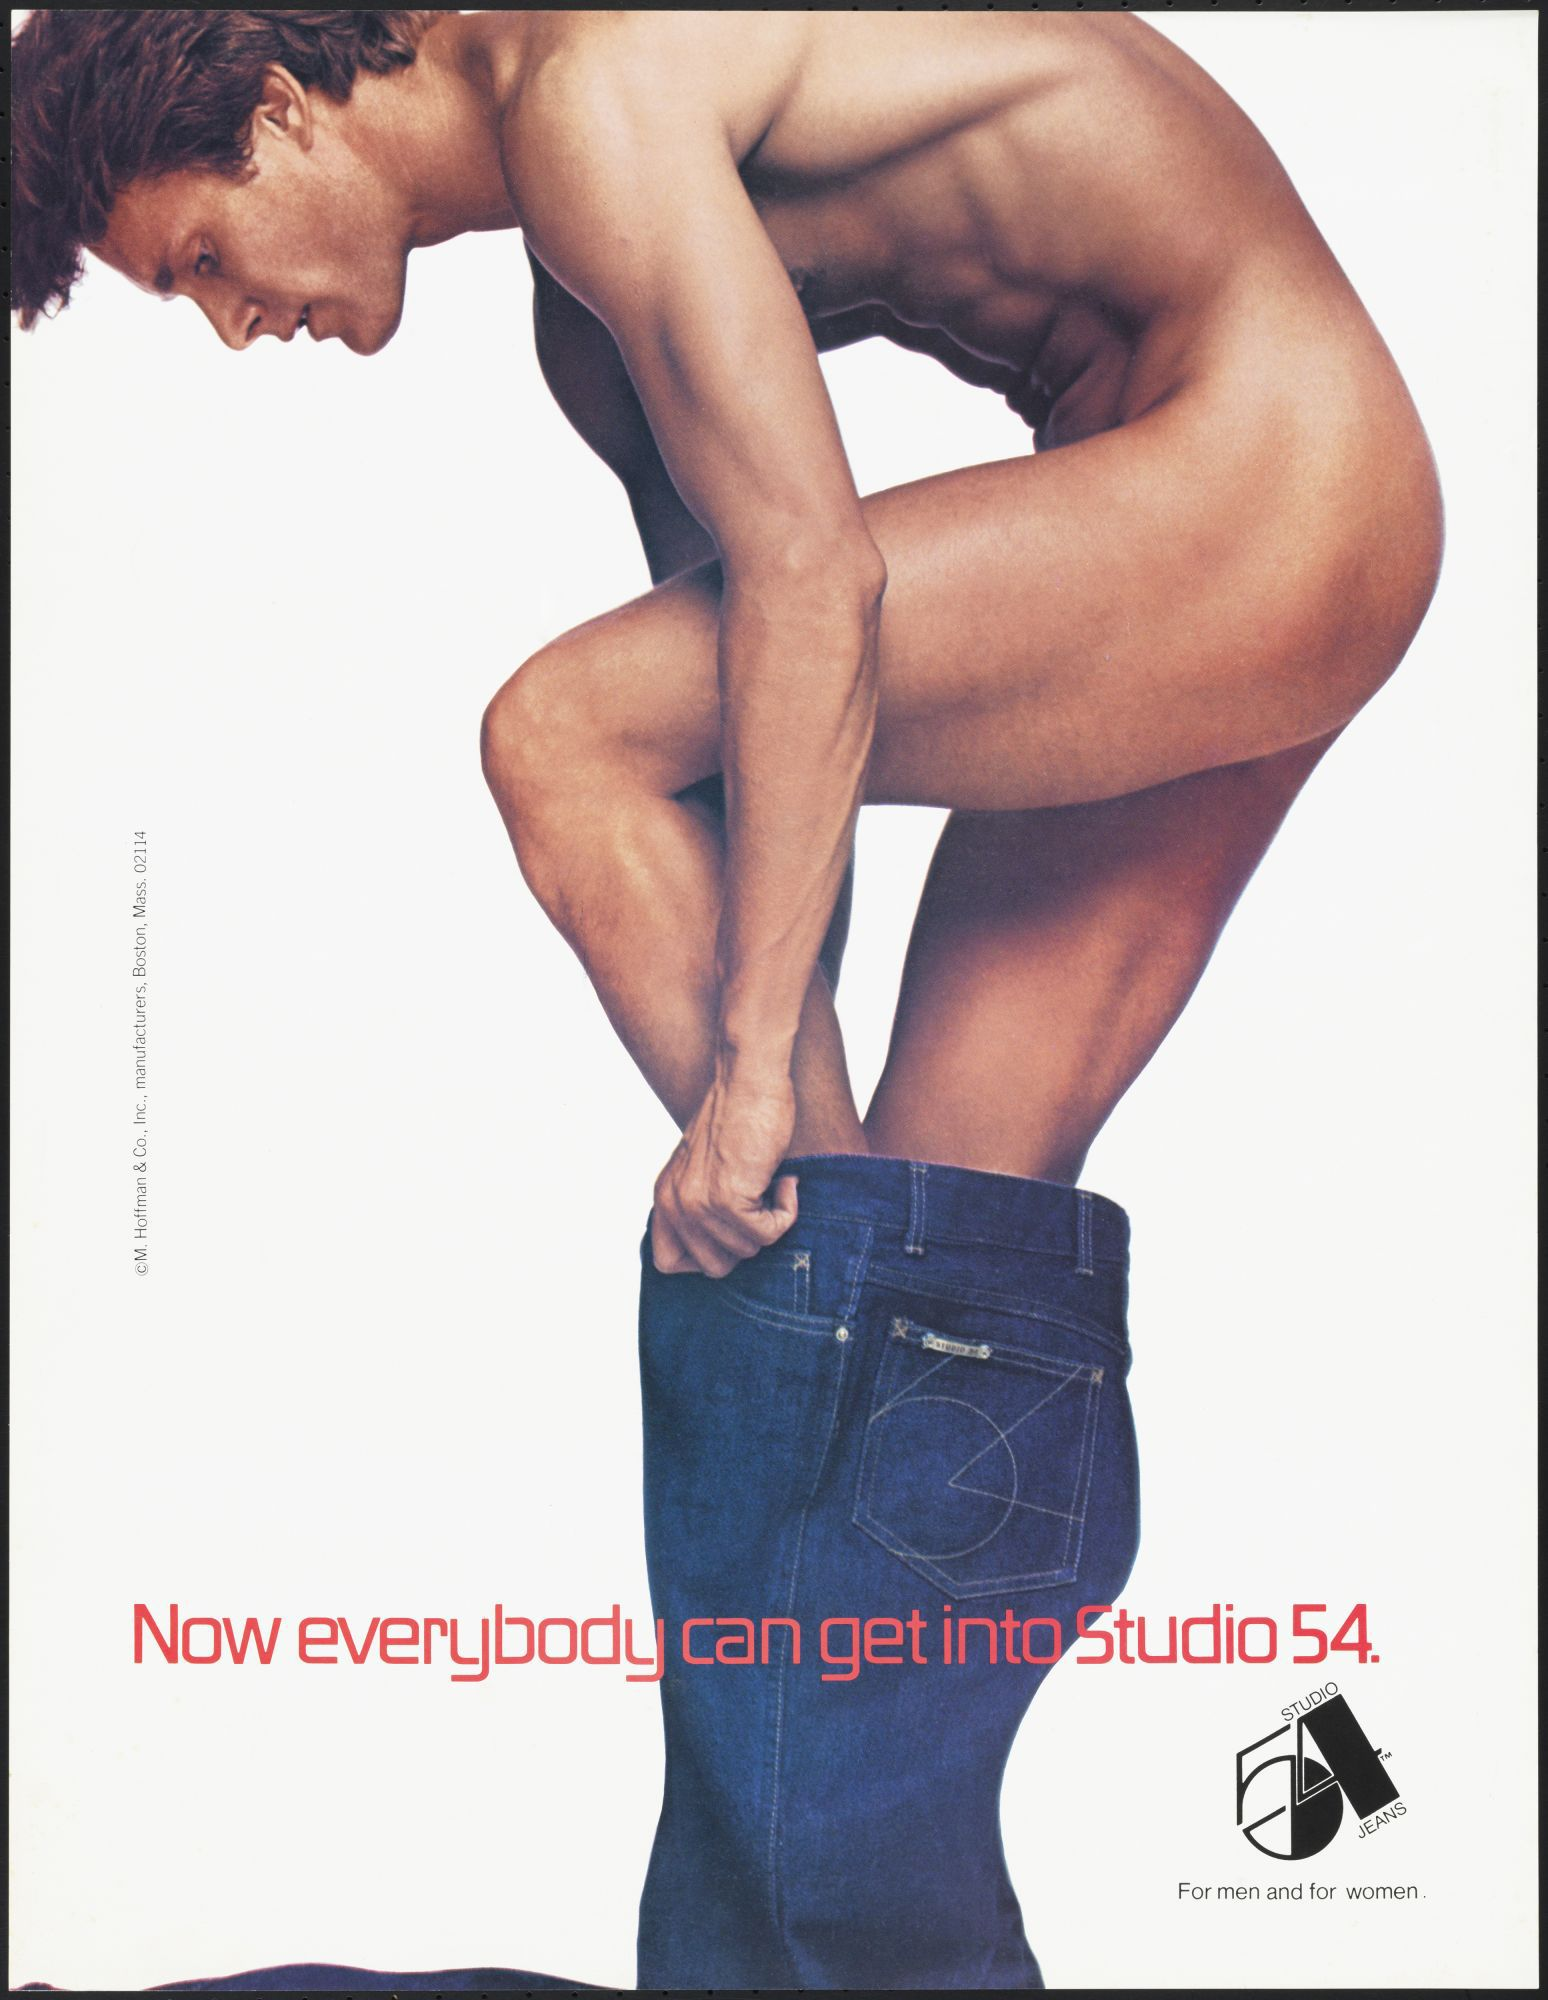 <p>Gordon Munro and Peter Roger: Now everybody can get into Studio 54</p>